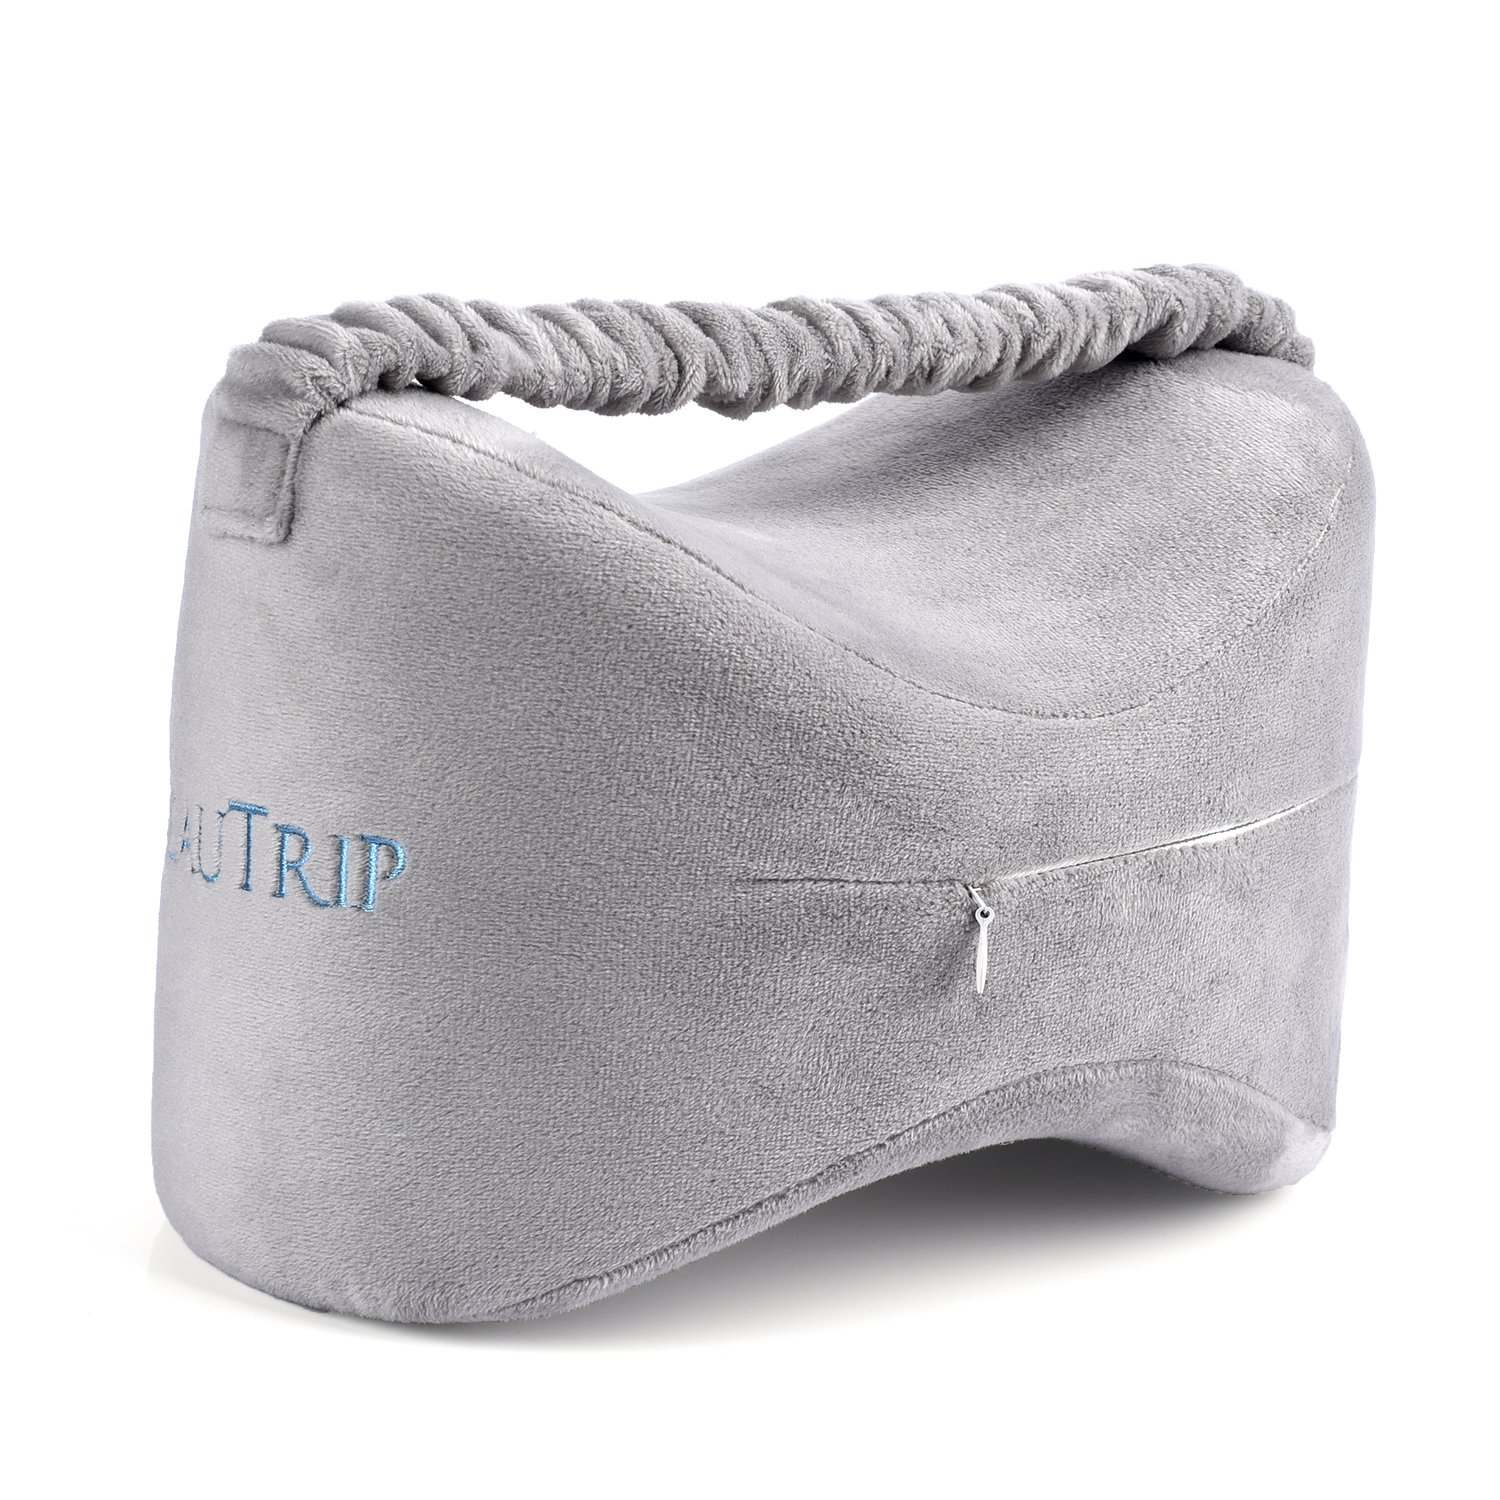 BEAUTRIP Knee Pillows for Side Sleepers Premium Memory Foam Wedge Contour Leg Pillow Cushions Support with Washable Cover for Sciatica Back Hip Joint Knee Pain Relief